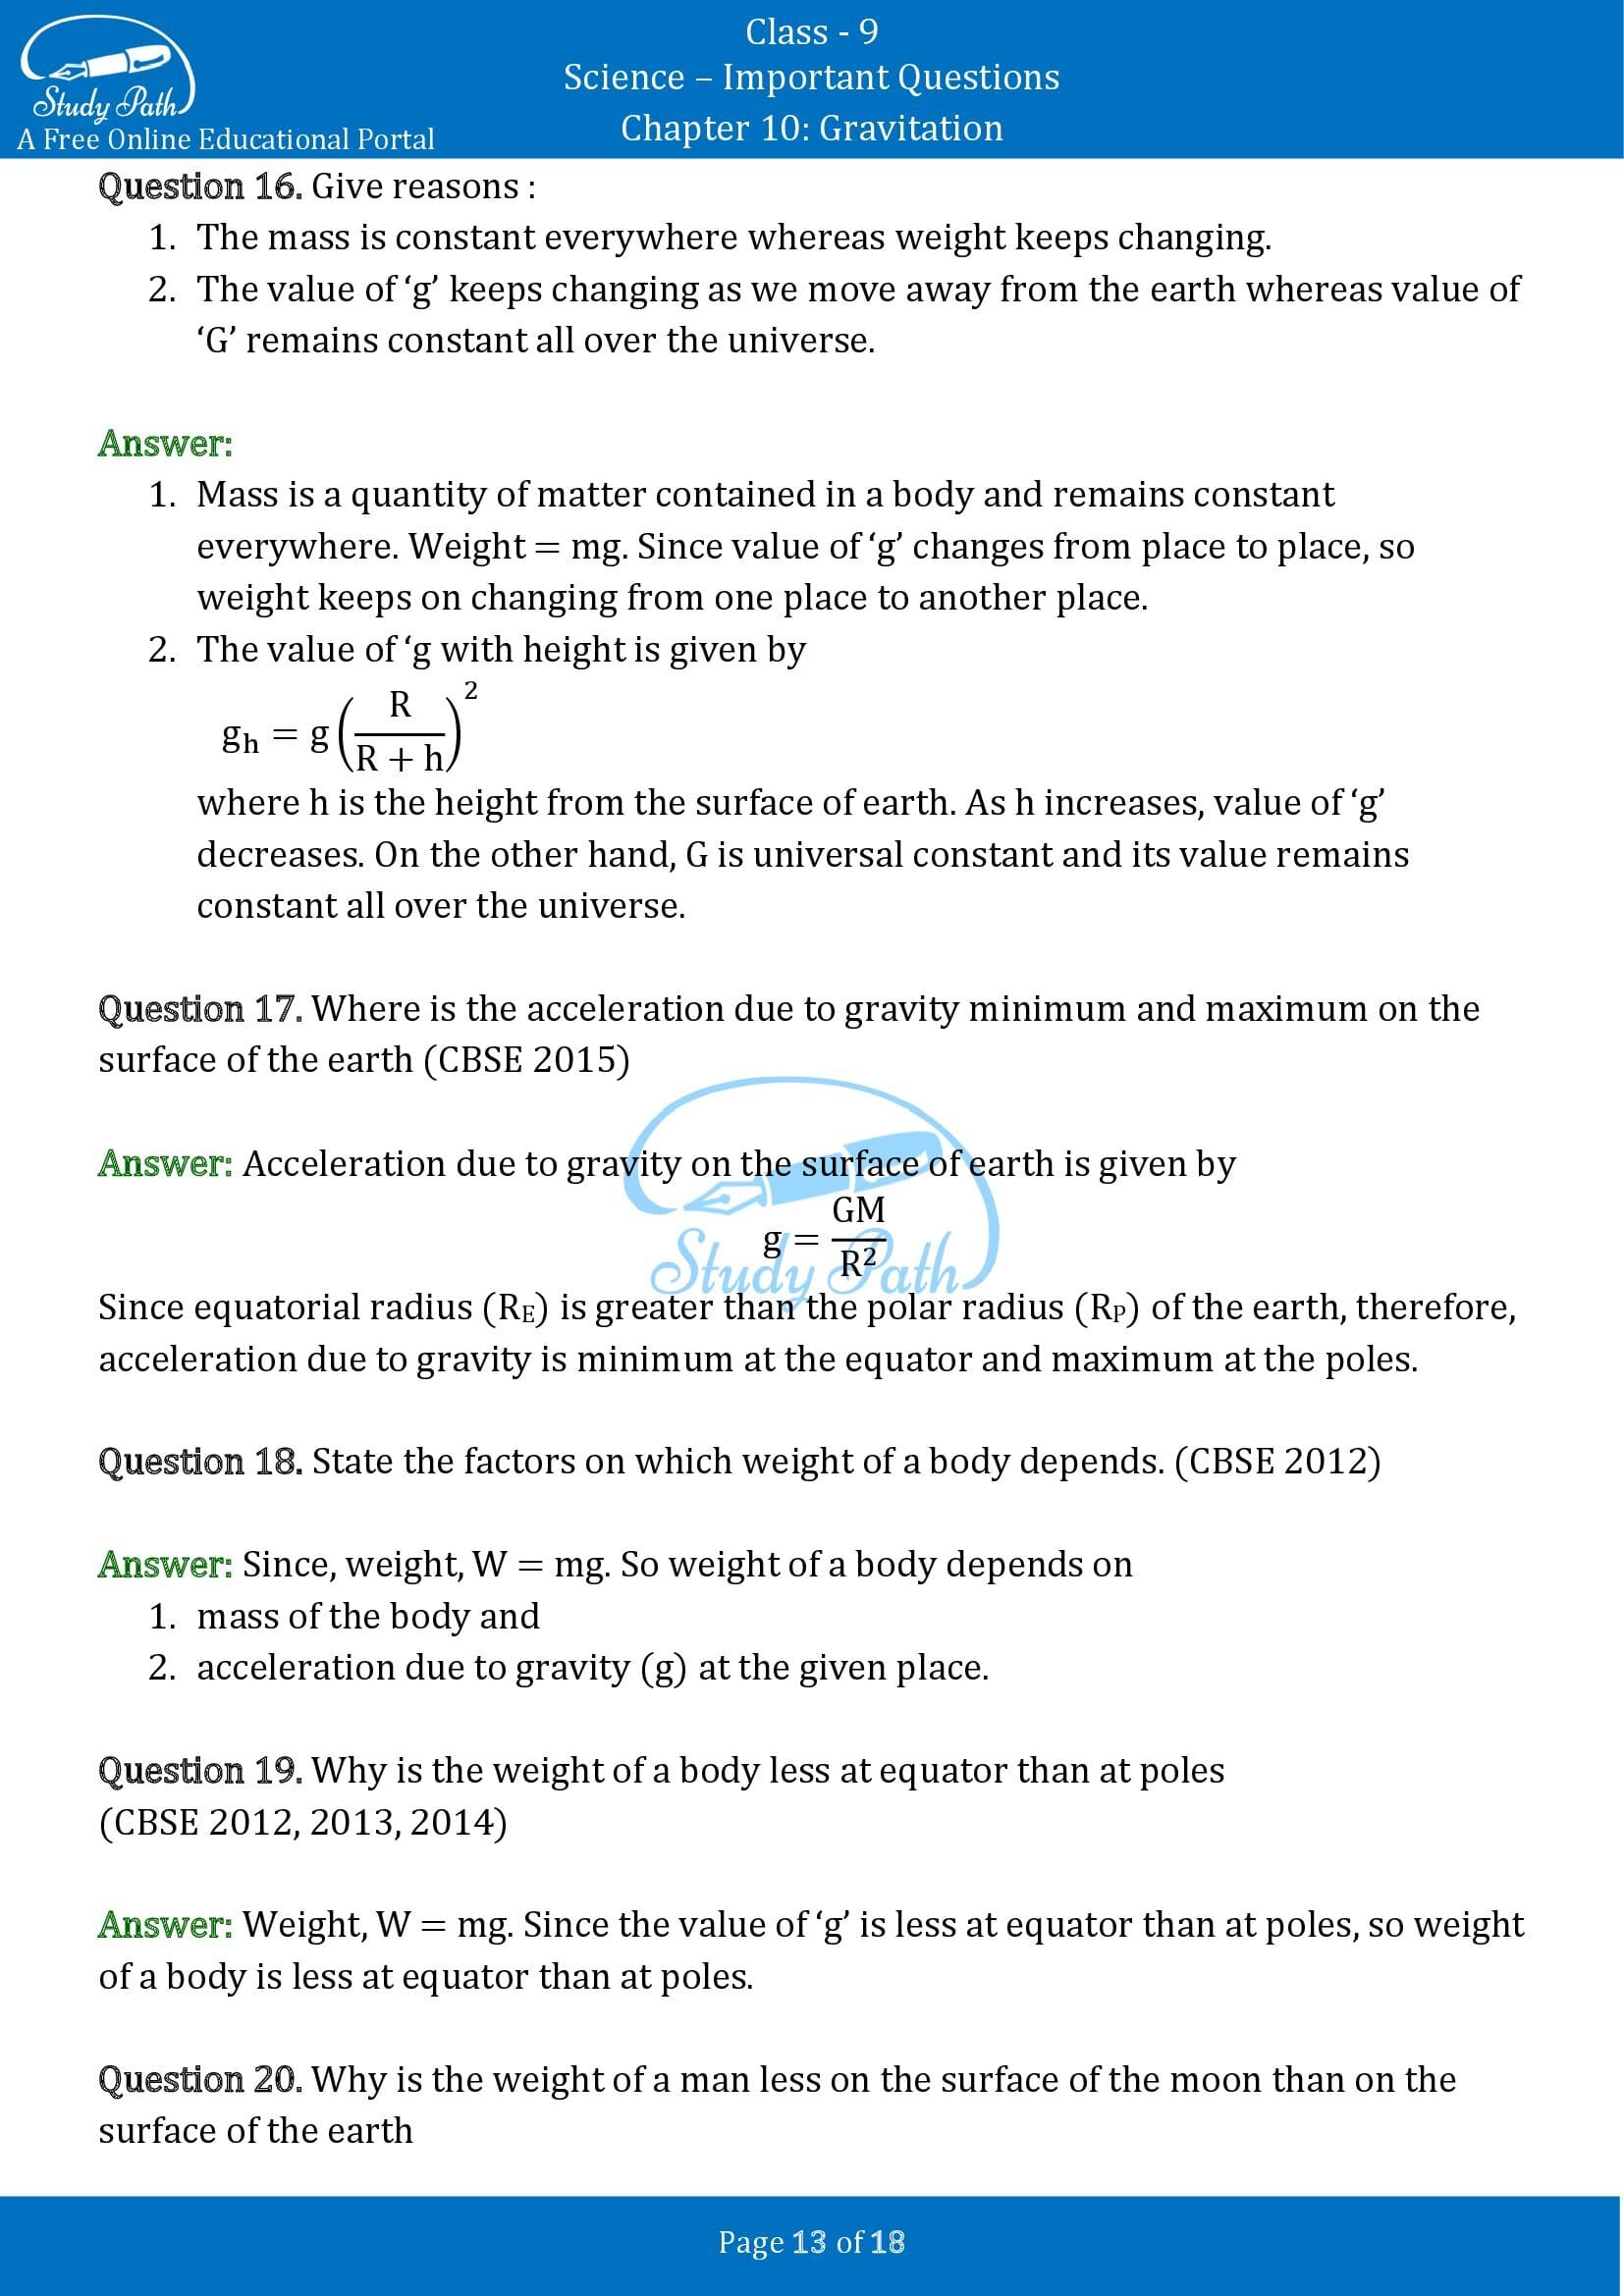 Important Questions for Class 9 Science Chapter 10 Gravitation 00013